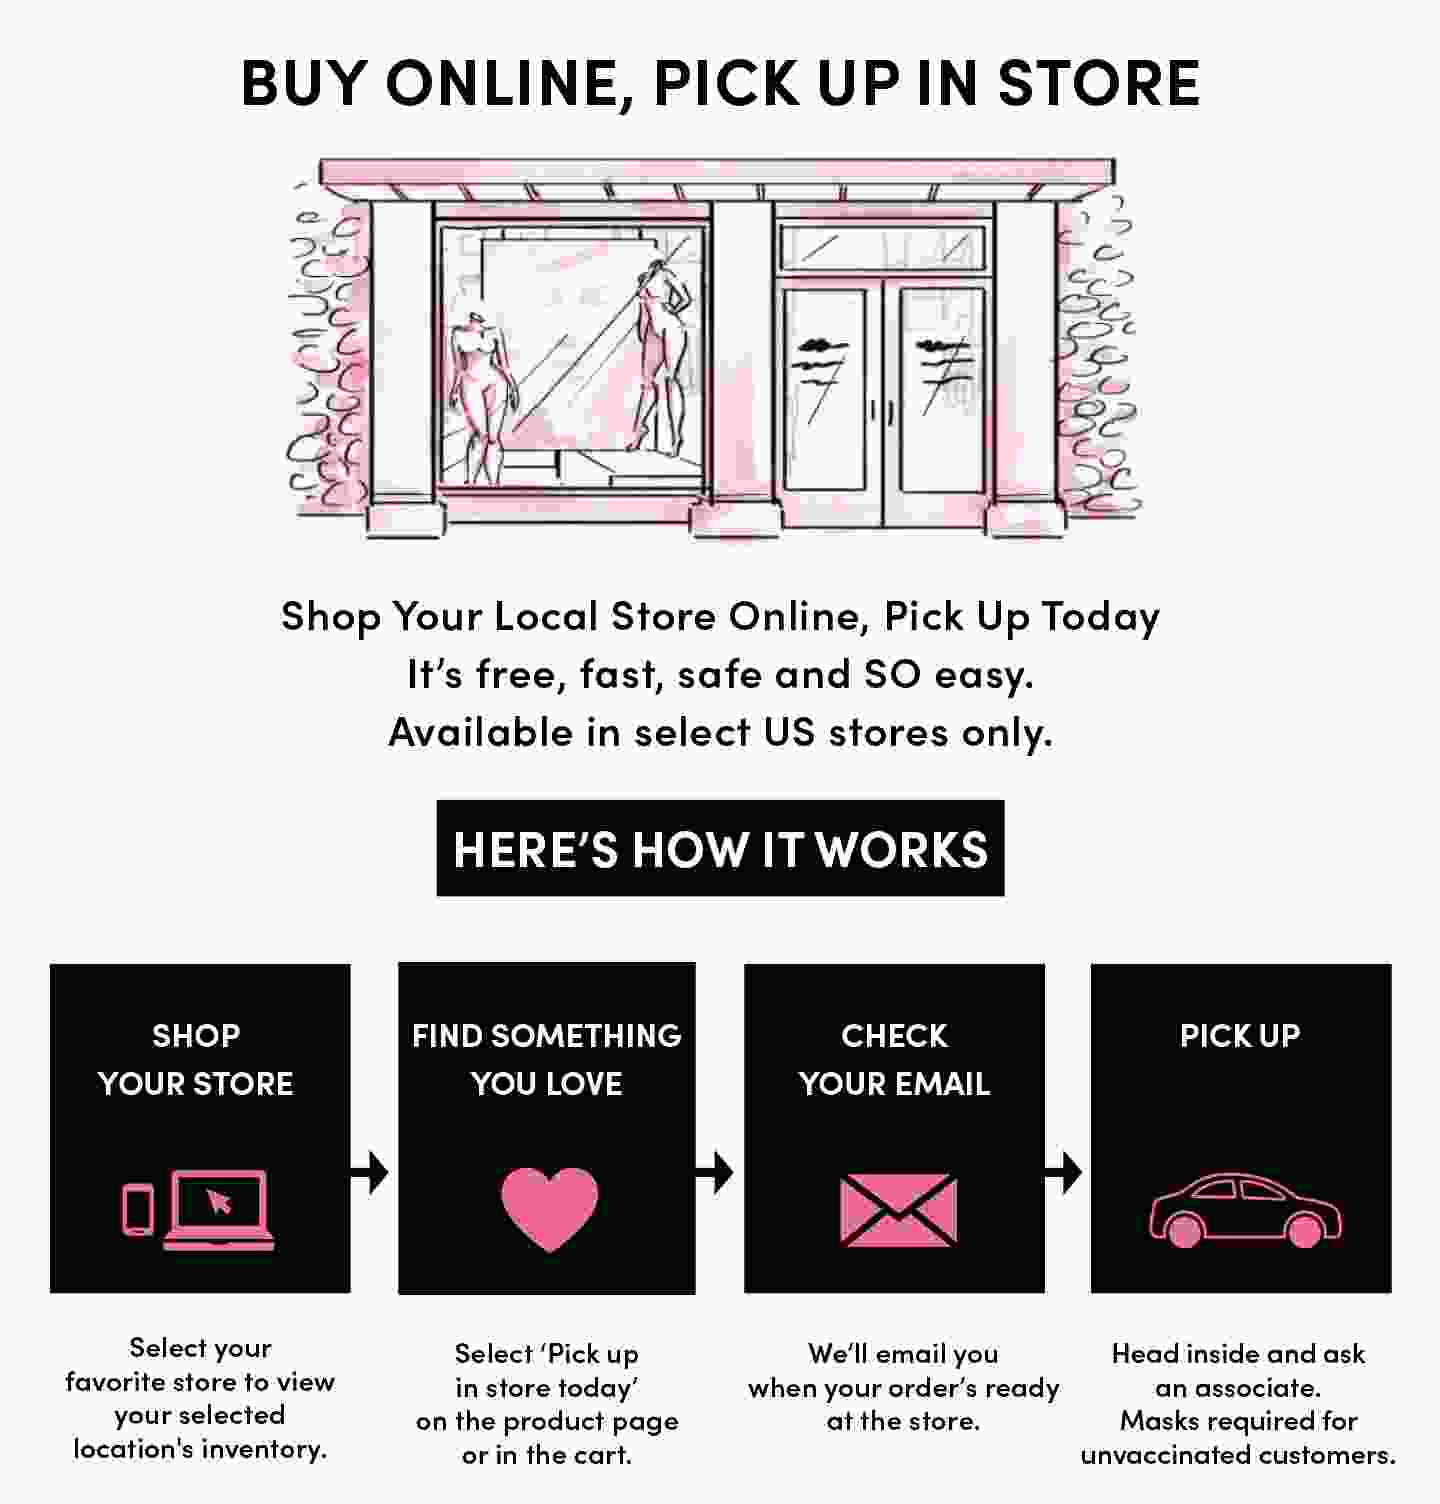 PICK UP TODAY, YOU'VE GOT OPTIONS. Shop online and get fast, free in-store or curbside pickup! Available in select stores. HERE'S HOW IT WORKS. Shop torrid.com, Find something you love and select Pick up in store today on the product page or in the cart. Check Your Email, We'll email you when your order's ready. At select stores, you'll have the option to choose no-contact curbside pickup. Walk in or Drive up, To pick up in store, just put on your mask, head inside and ask an associate. For curbside, wait in your car and we'll bring out your order. Easy.